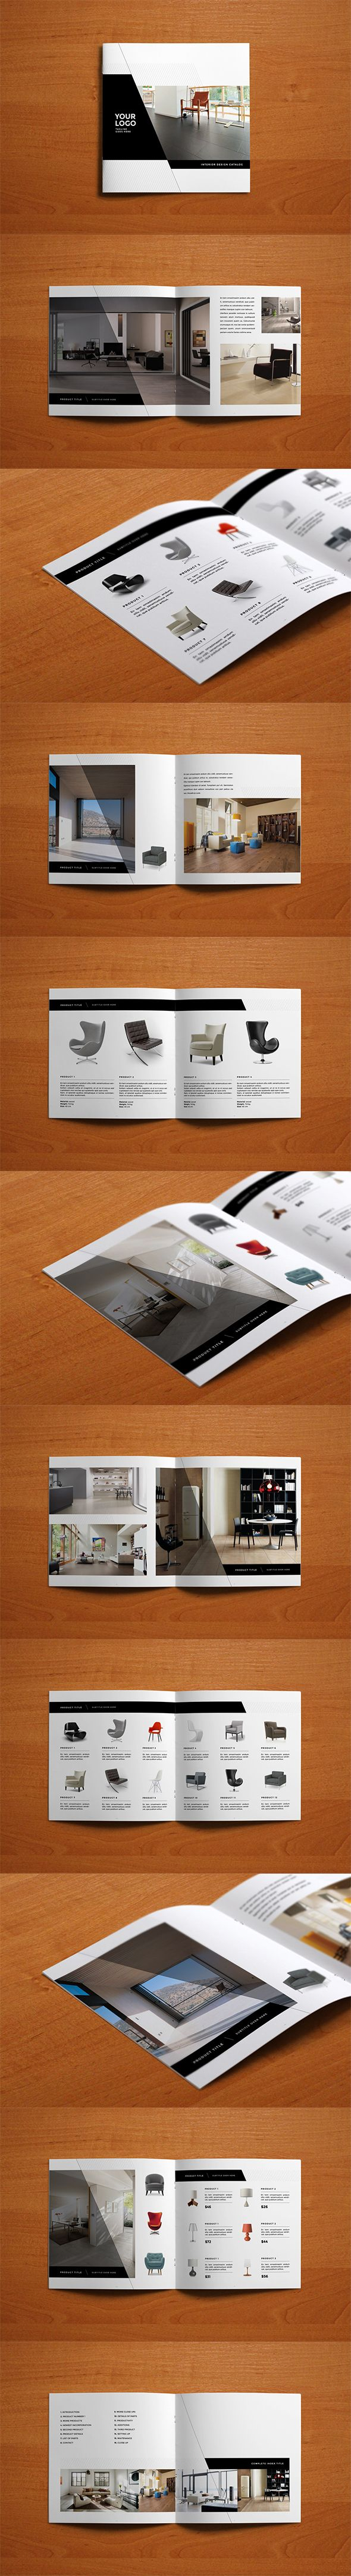 Minimal Interior Design Catalog. Download here: http:∕∕graphicriver.net∕item∕minimal-interior-design-catalog∕9849569?ref=abradesign #design #brochure #catalog